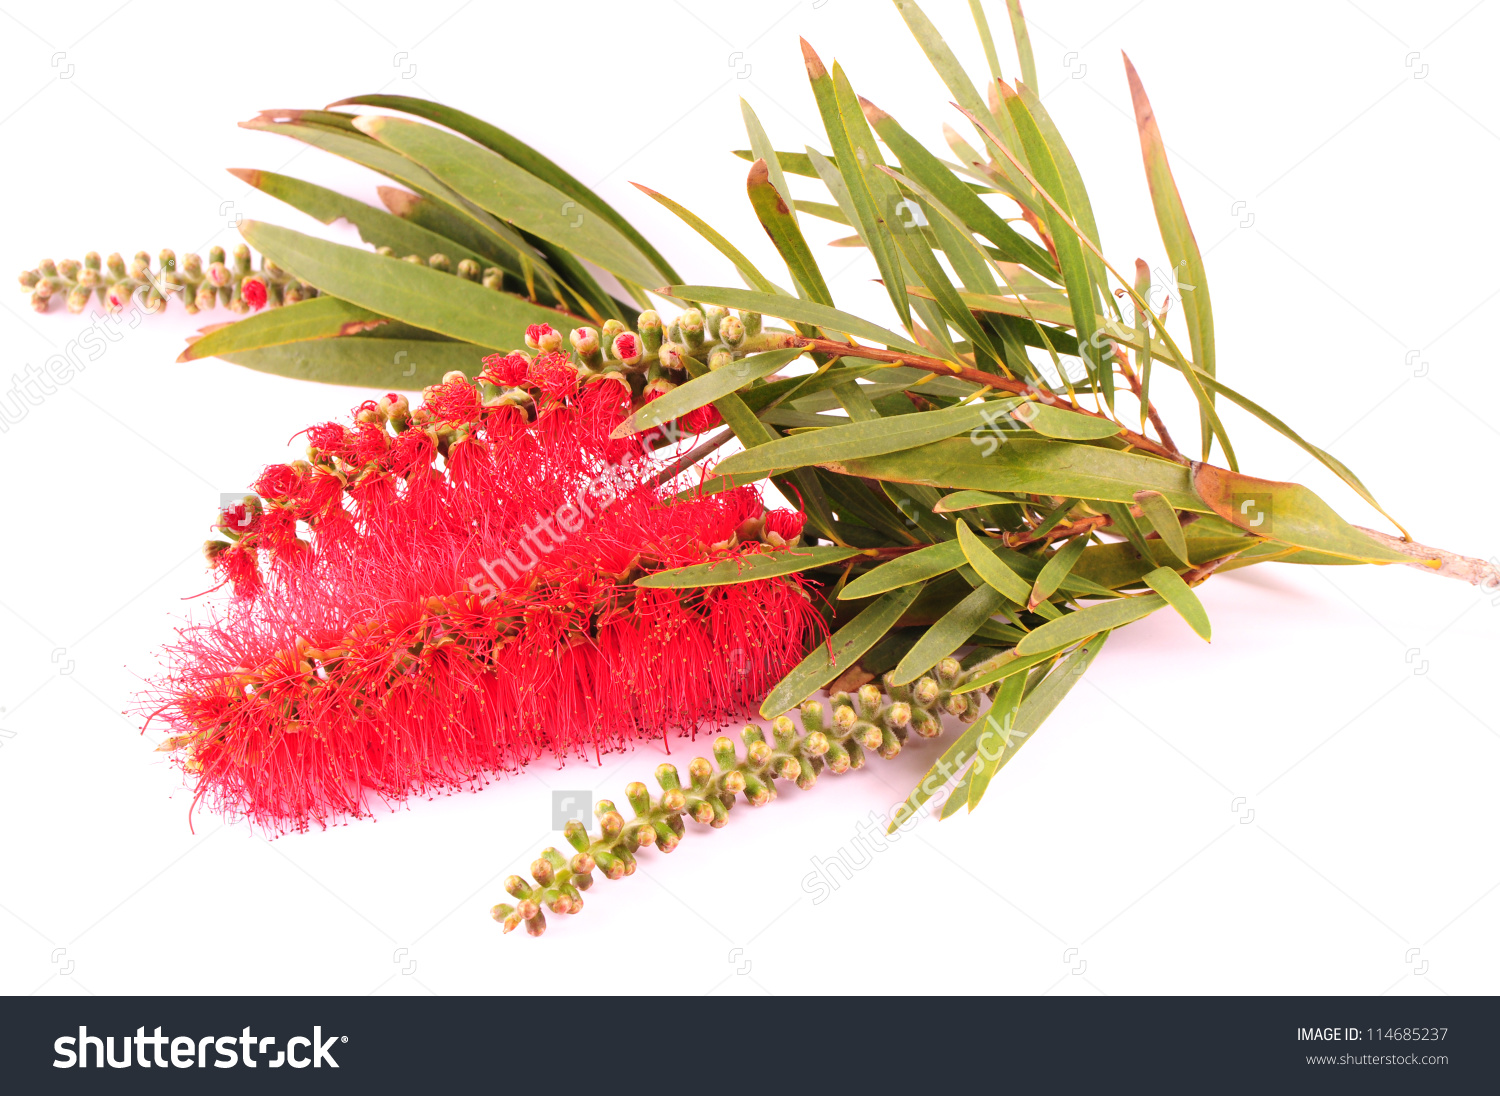 Banksia Proteaceae Isolated On White Background Stock Photo.